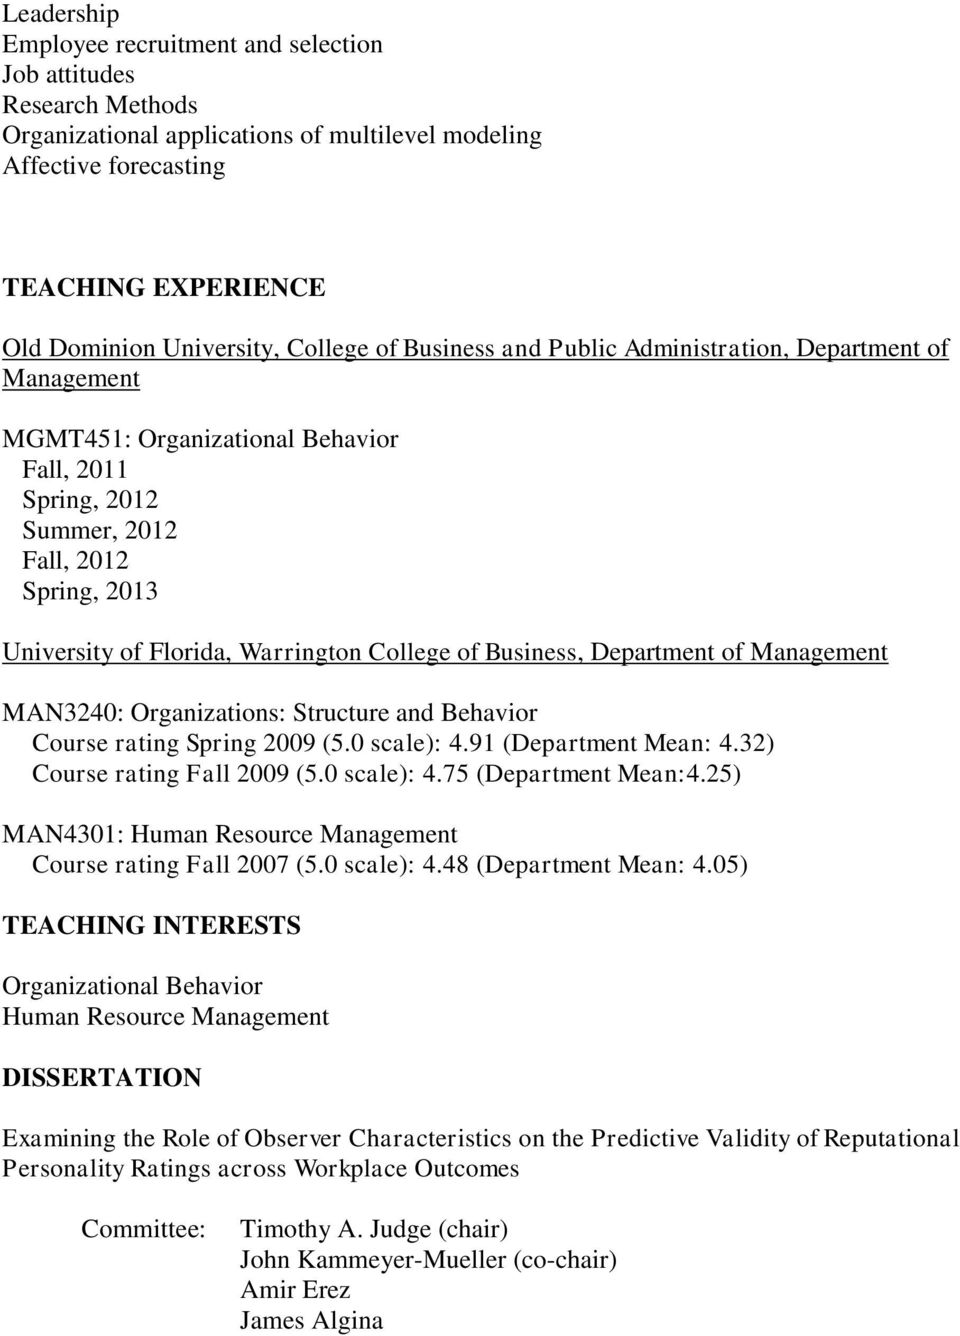 College of Business, MAN3240: Organizations: Structure and Behavior Course rating Spring 2009 (5.0 scale): 4.91 (Department Mean: 4.32) Course rating Fall 2009 (5.0 scale): 4.75 (Department Mean:4.